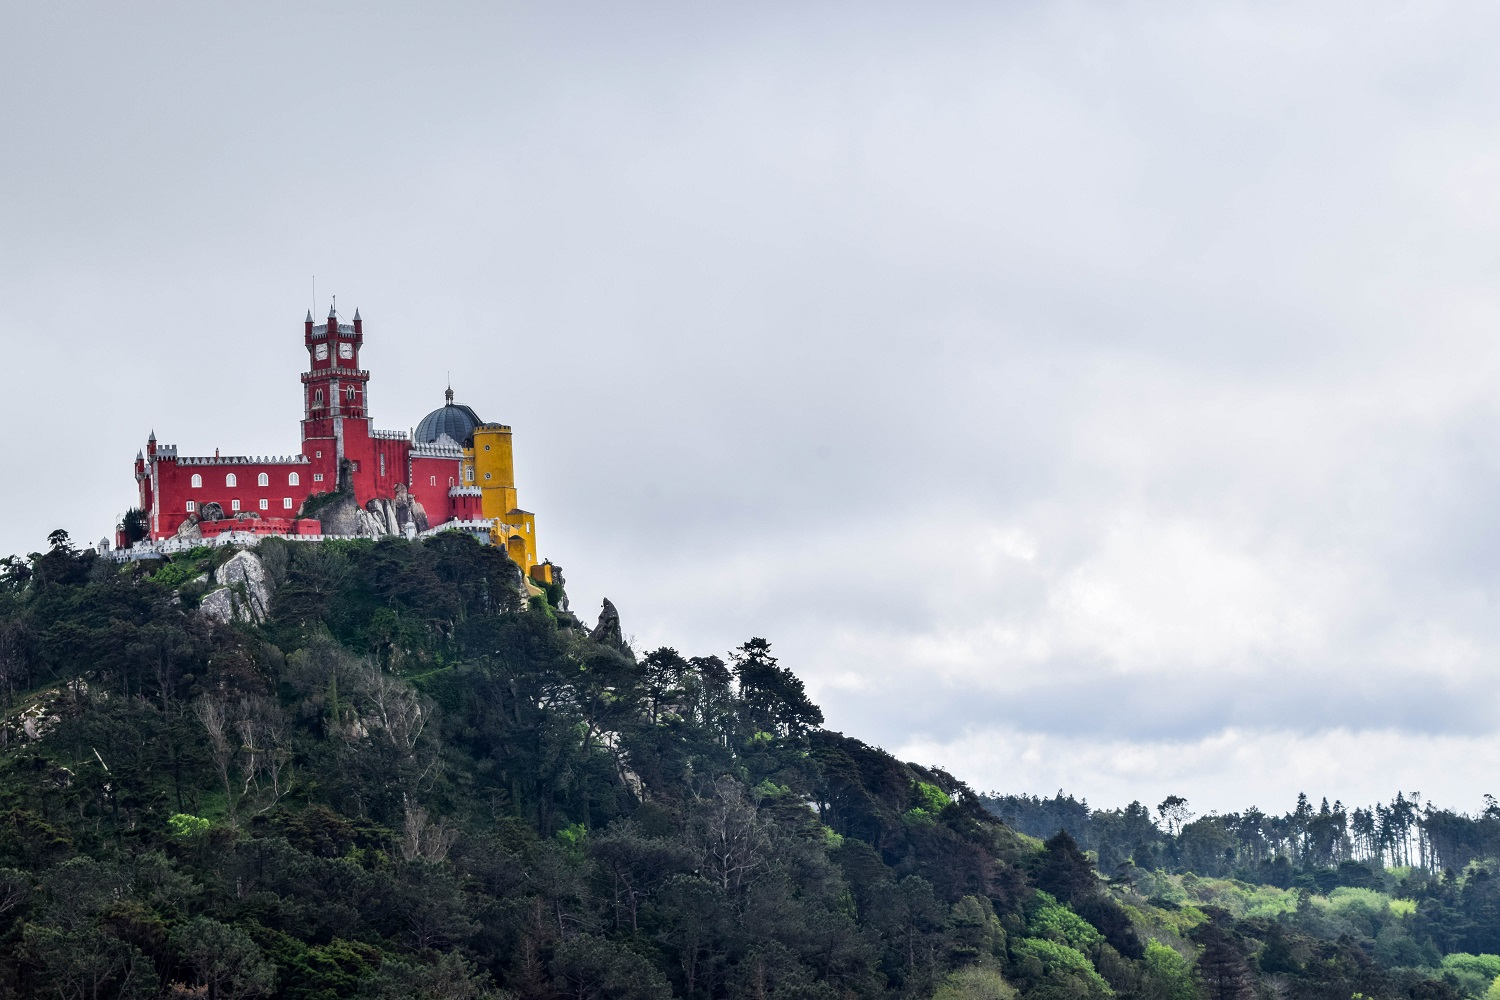 View of the palace seen from the Castelo dos Mouros